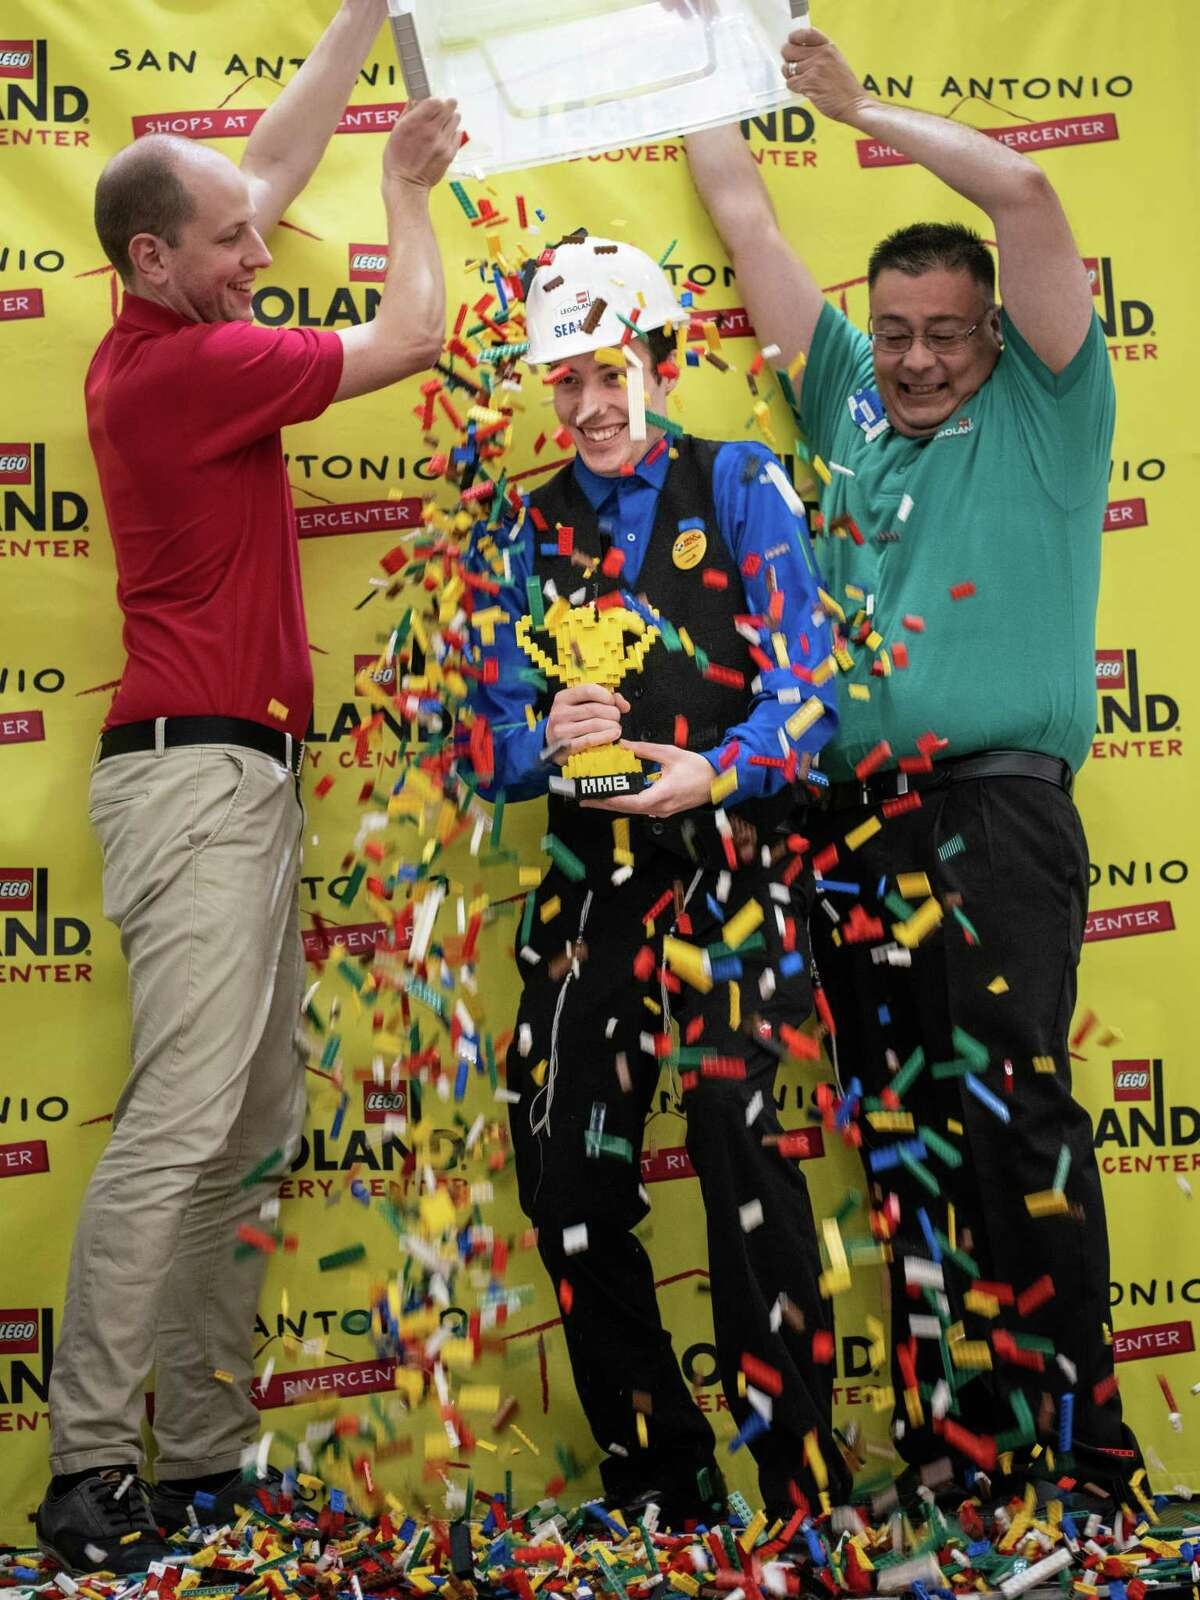 Winner Kevin Hintz is showered with LEGOs during a lego-building competition to name the new Lego Master Builder for LEGOLAND Discovery Center San Antonio opening soon on Sunday, January 13, 2019. The theme for today's competition was,